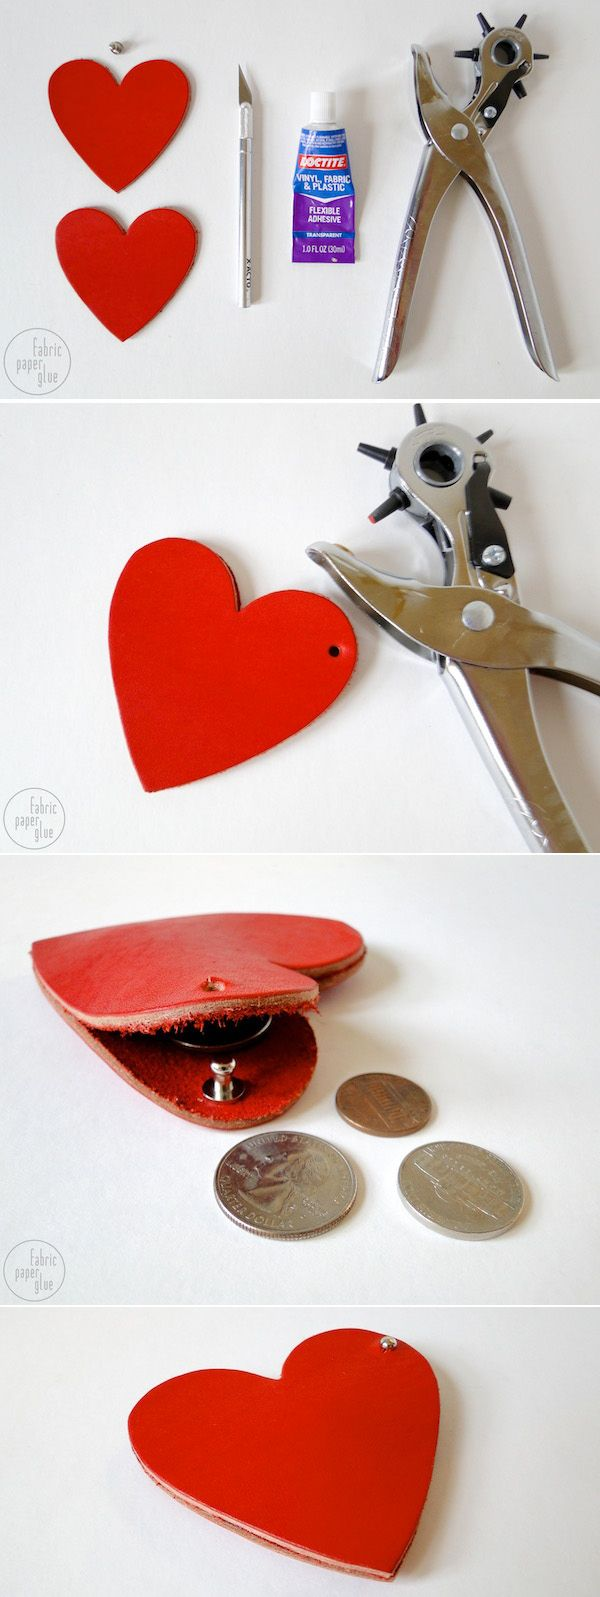 DIY Leather Heart Coin Purse #DIY #crafts